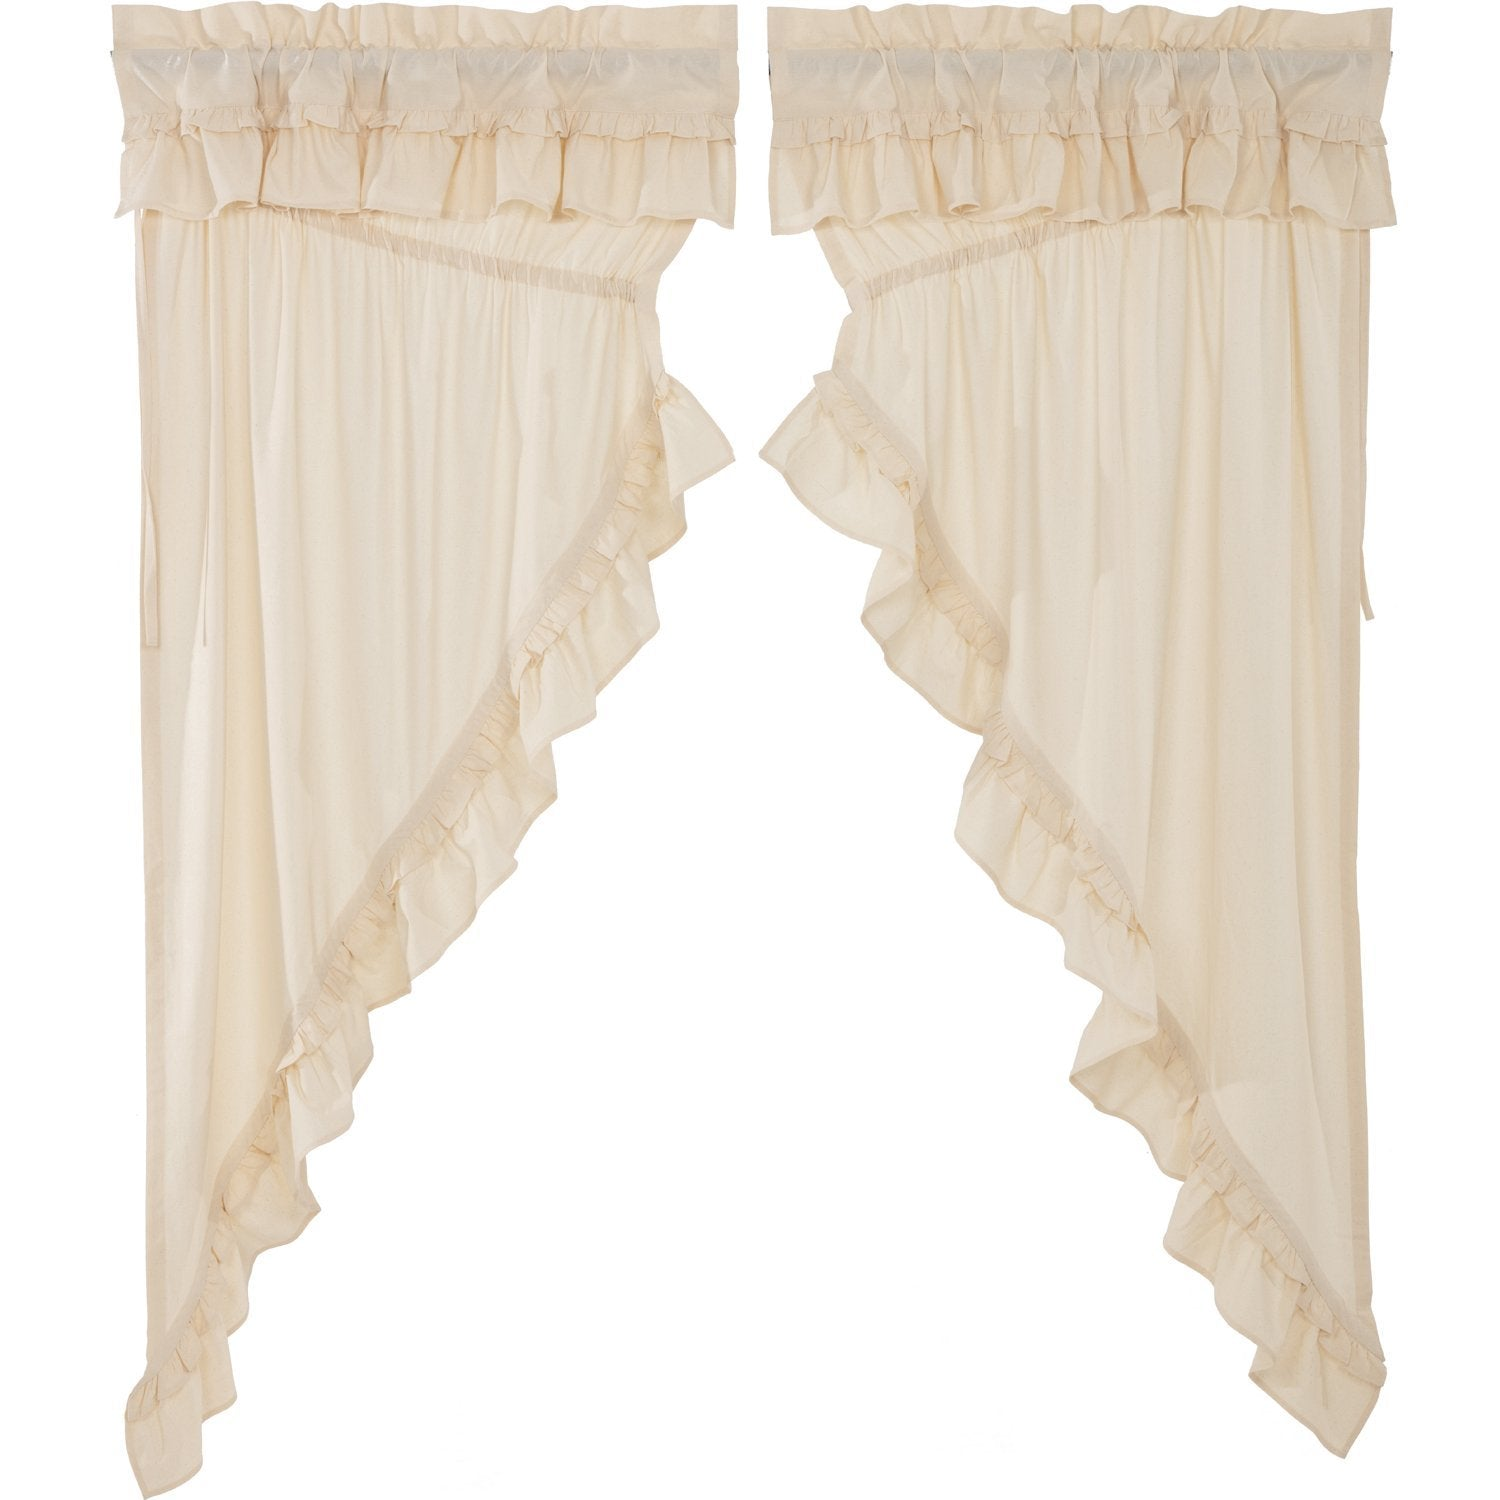 Muslin Ruffled Unbleached Natural Prairie Panel Set of 2.